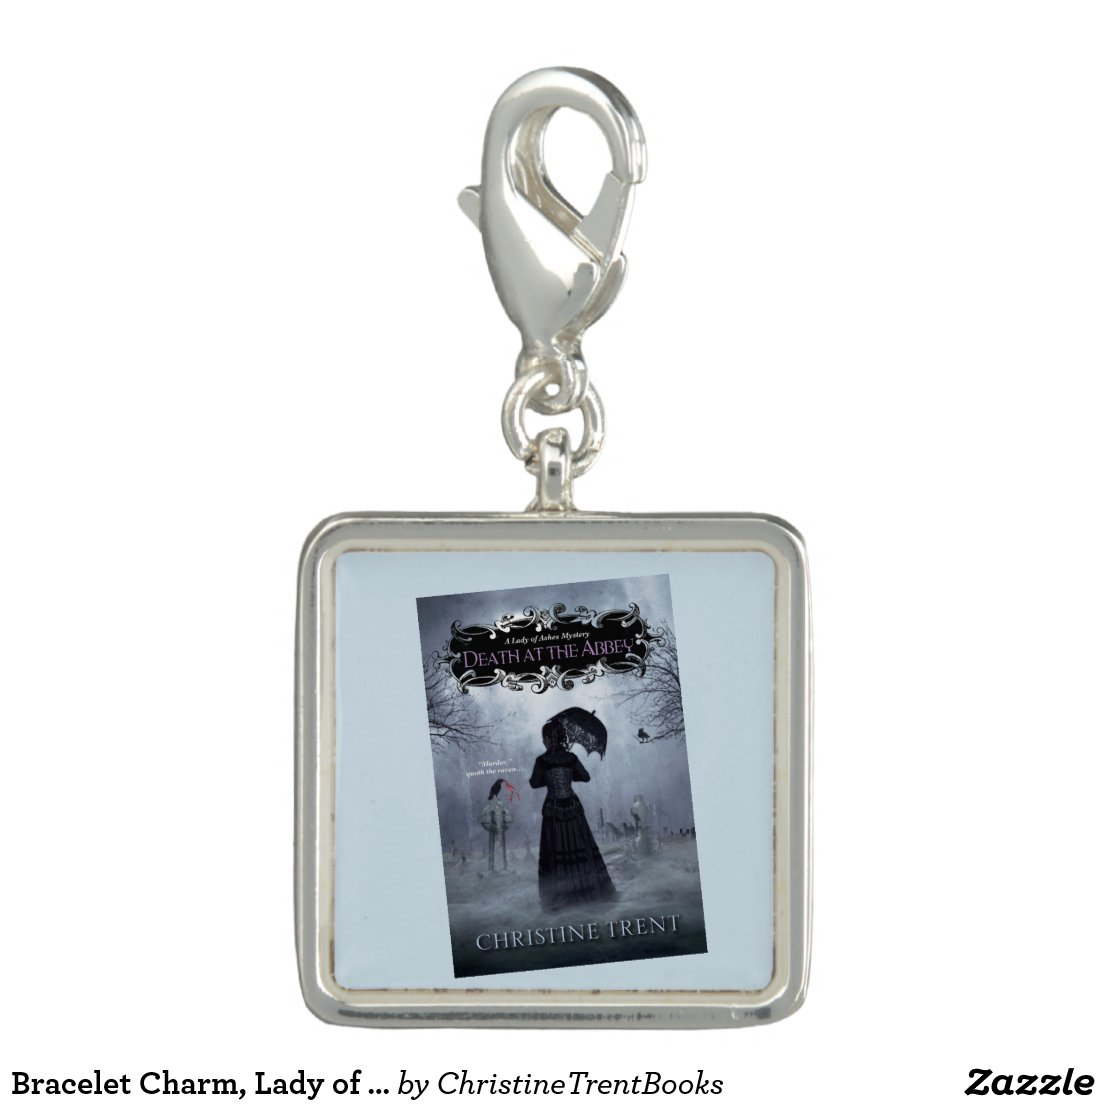 Bracelet Charm, Lady of Ashes, Death at Abbey